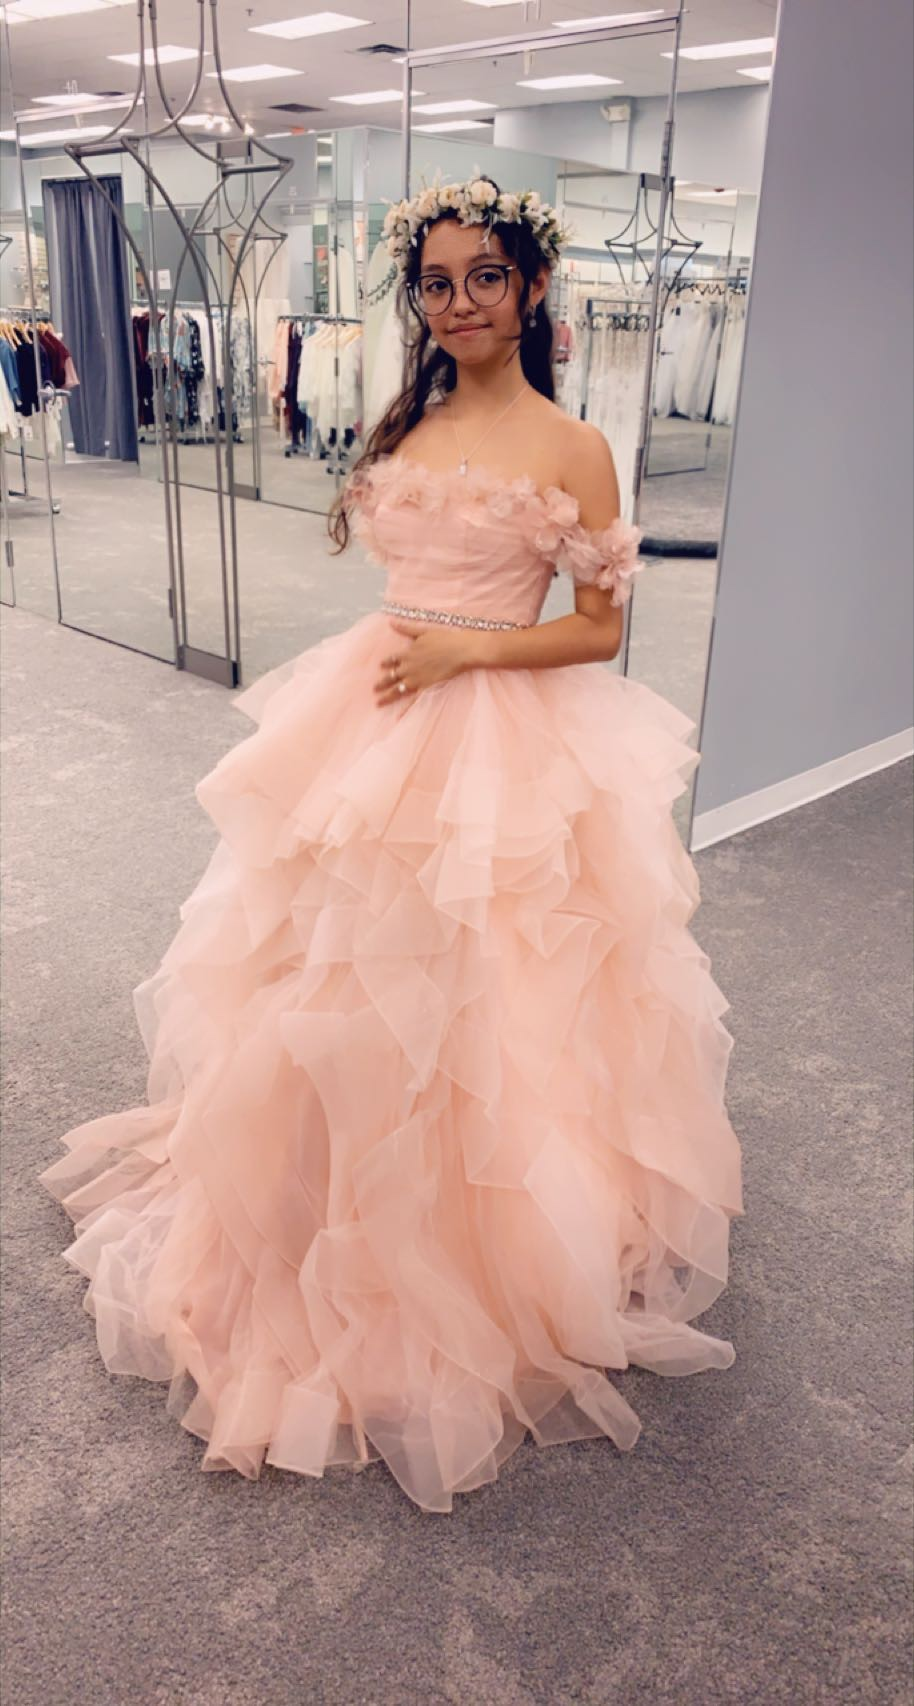 Teenage girl trying on a pink quinceañera dress and flower crown